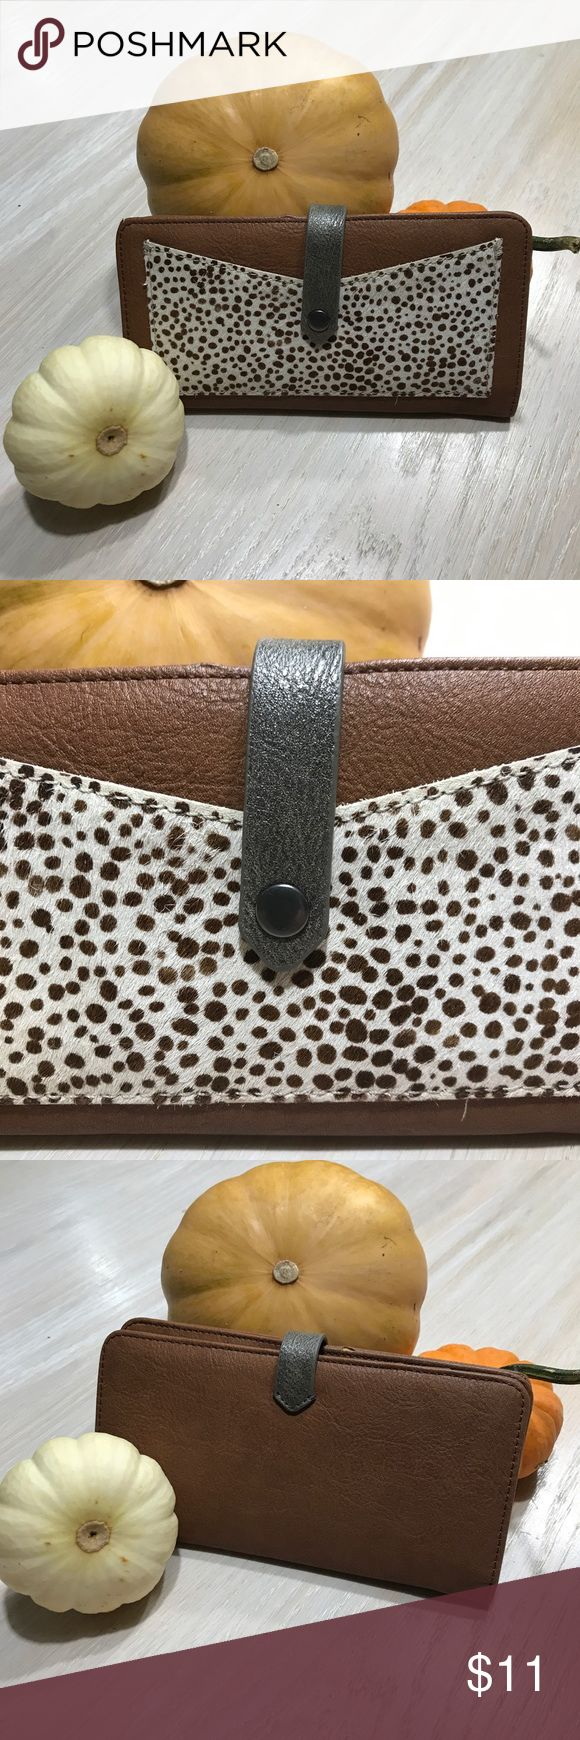 "Abercrombie and Fitch wallet snap clasp & faux fur Abercrombie and Fitch wallet in a checkbook style. Has a metallic silver strap clasp, outer and inner pockets. Vegan leather and cotton poly blend lining. Outer cow print pocket has faux fur! Small nick on top edge by clasp (see photos).  SPECS: 7 1/4"" wide 4 1/8"" tall (closed) 7 7/8"" tall (opened) 5 card pockets 3 long pockets 1 outer pocket (cow print)  WEAR IT: 💳as a clutch; all your essentials with no bulk 👜use it in a purse for your…"